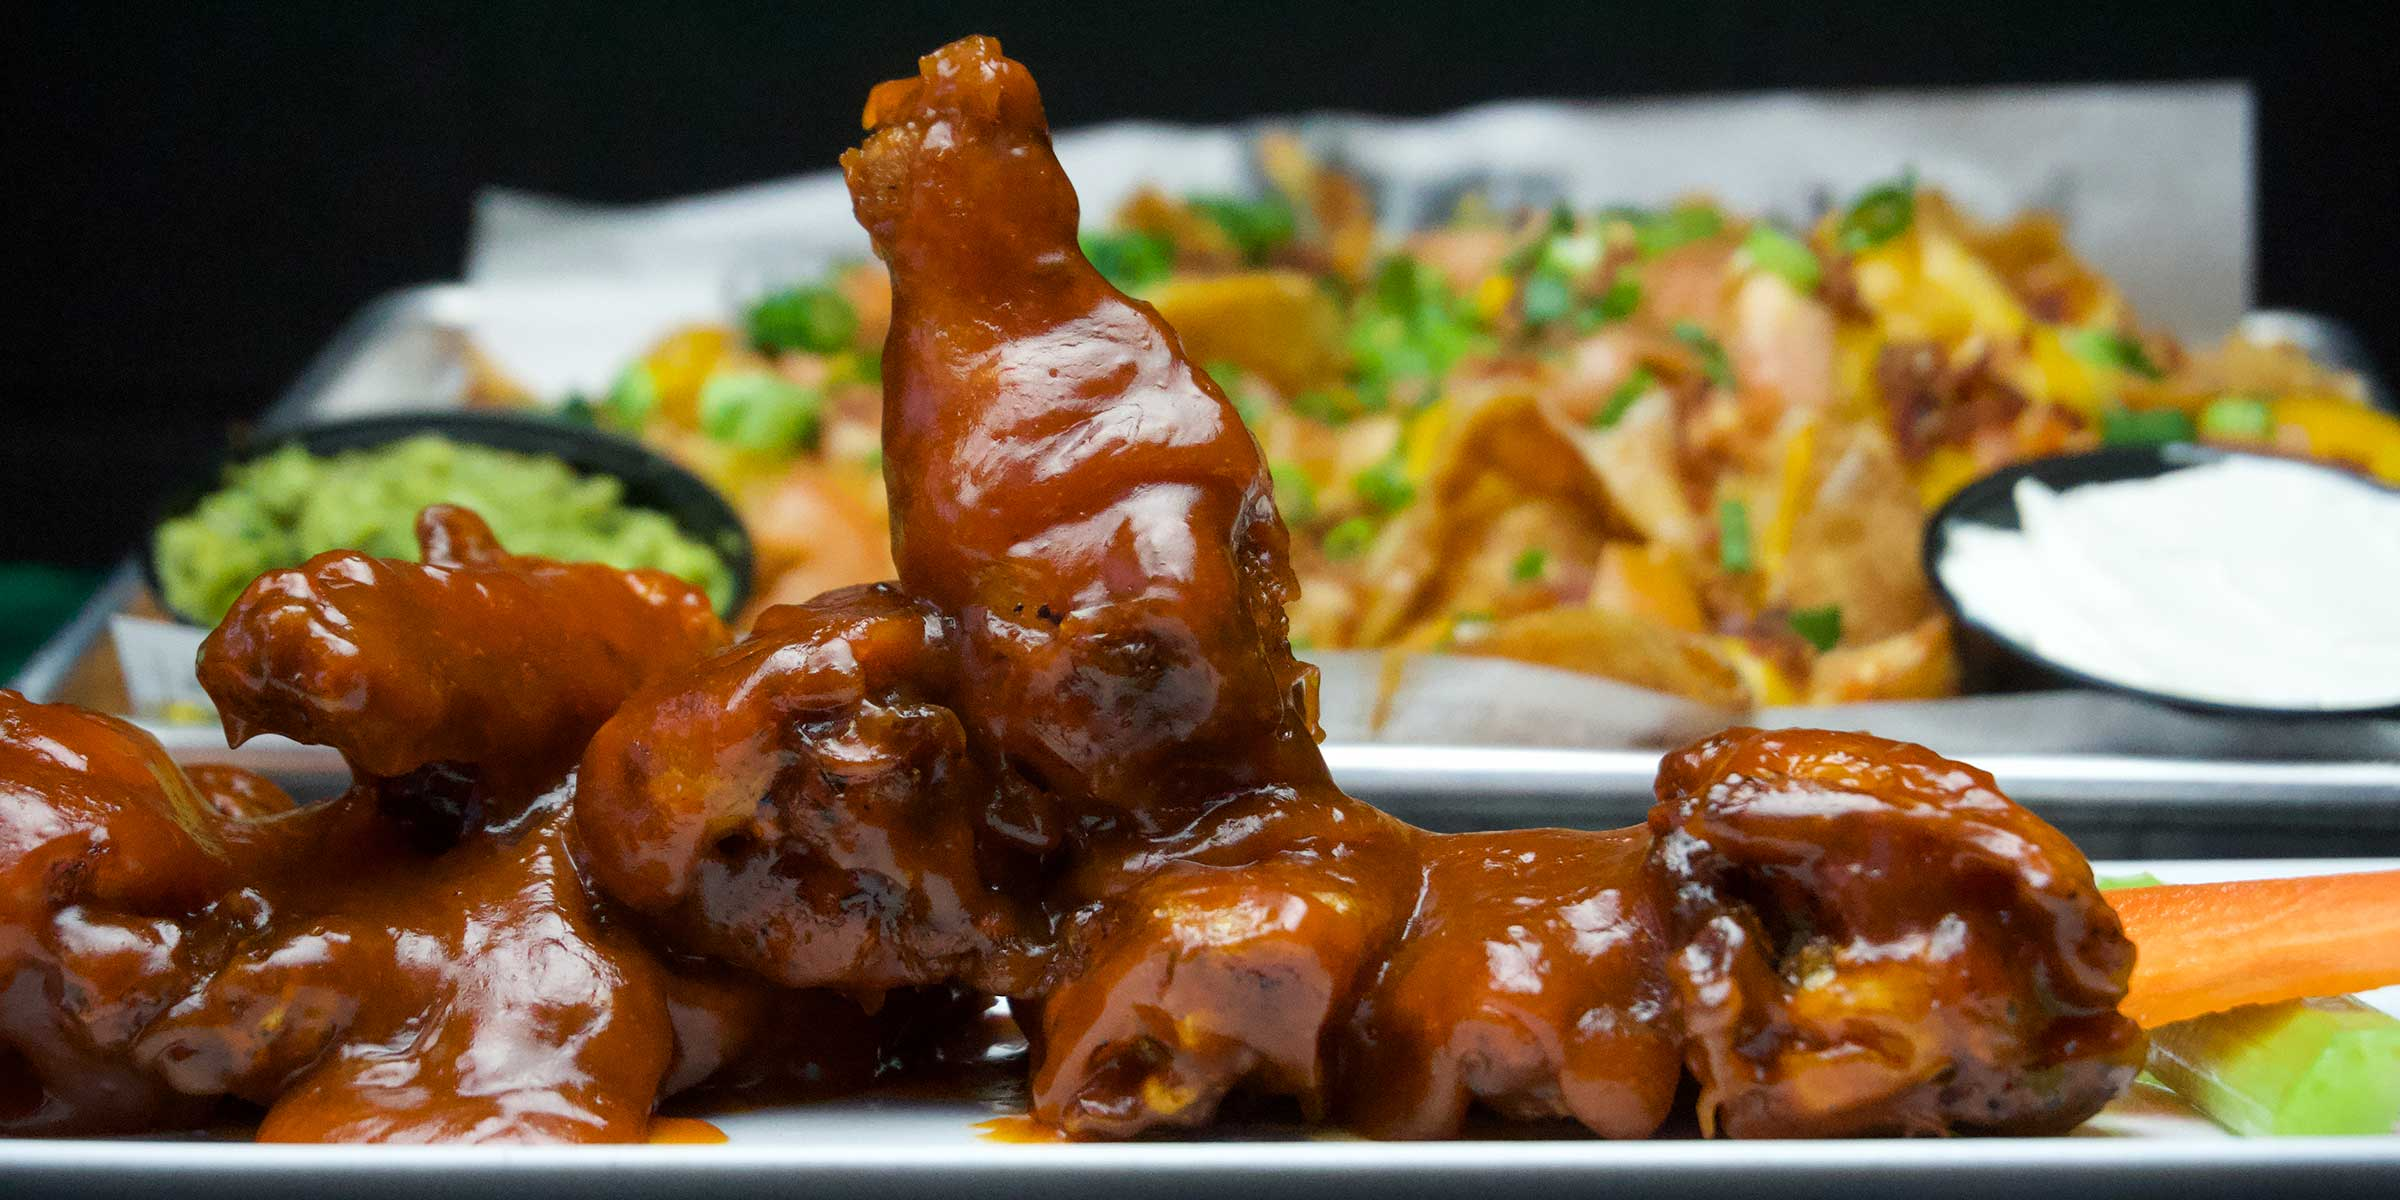 March Specials - Sweet & Sour Wings